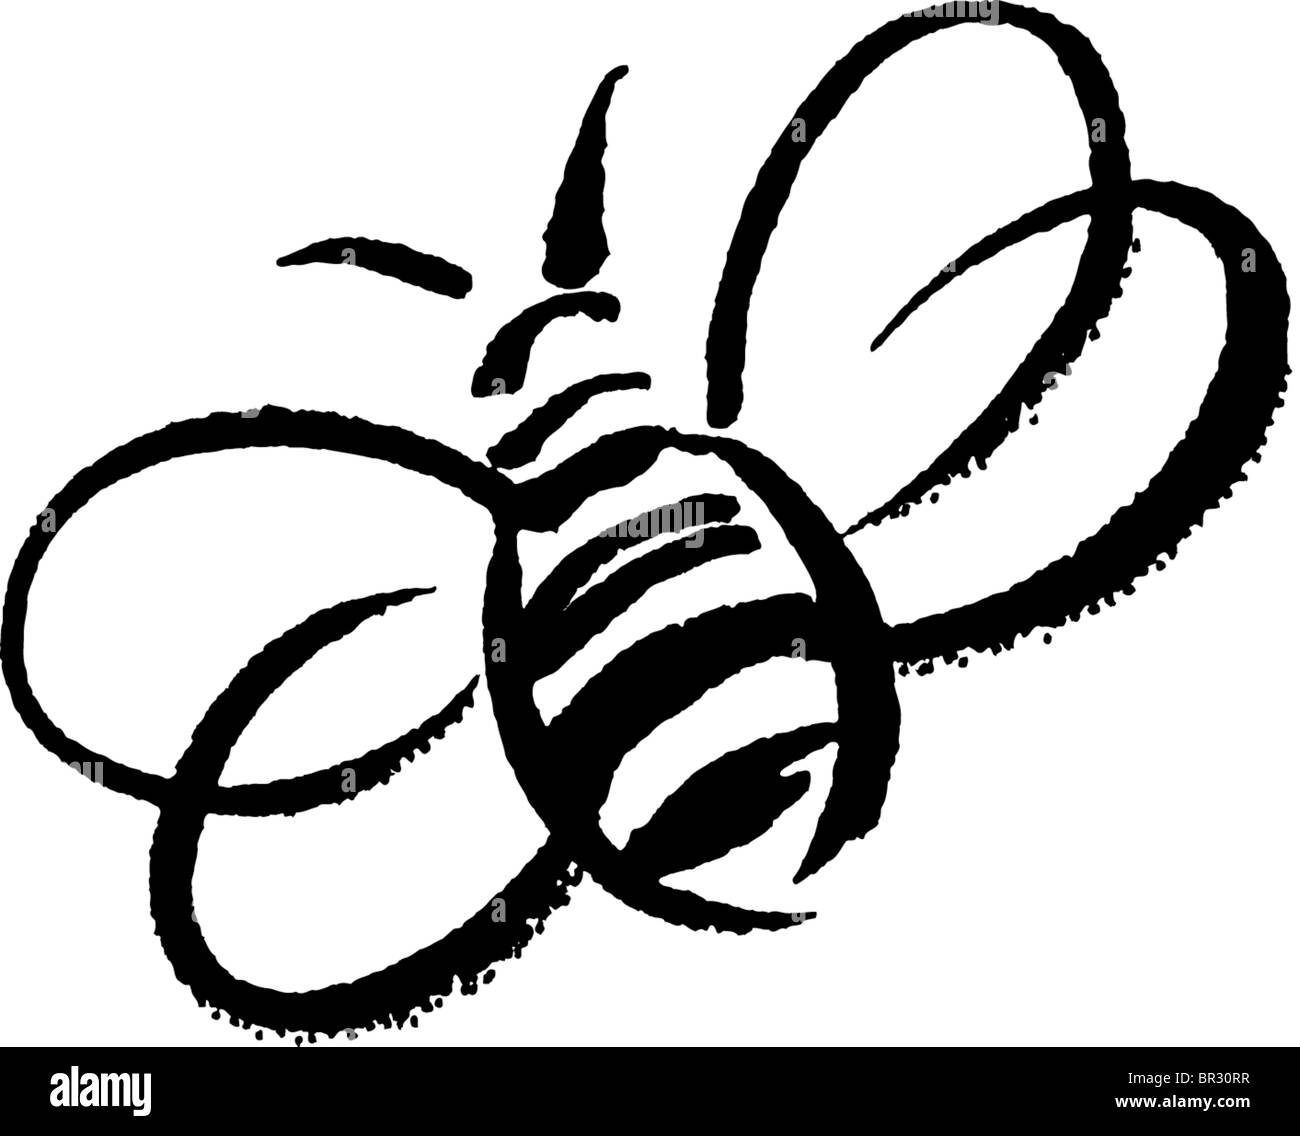 Uncategorized Draw A Bumble Bee a black and white drawing of bumblebee stock photo royalty free bumblebee